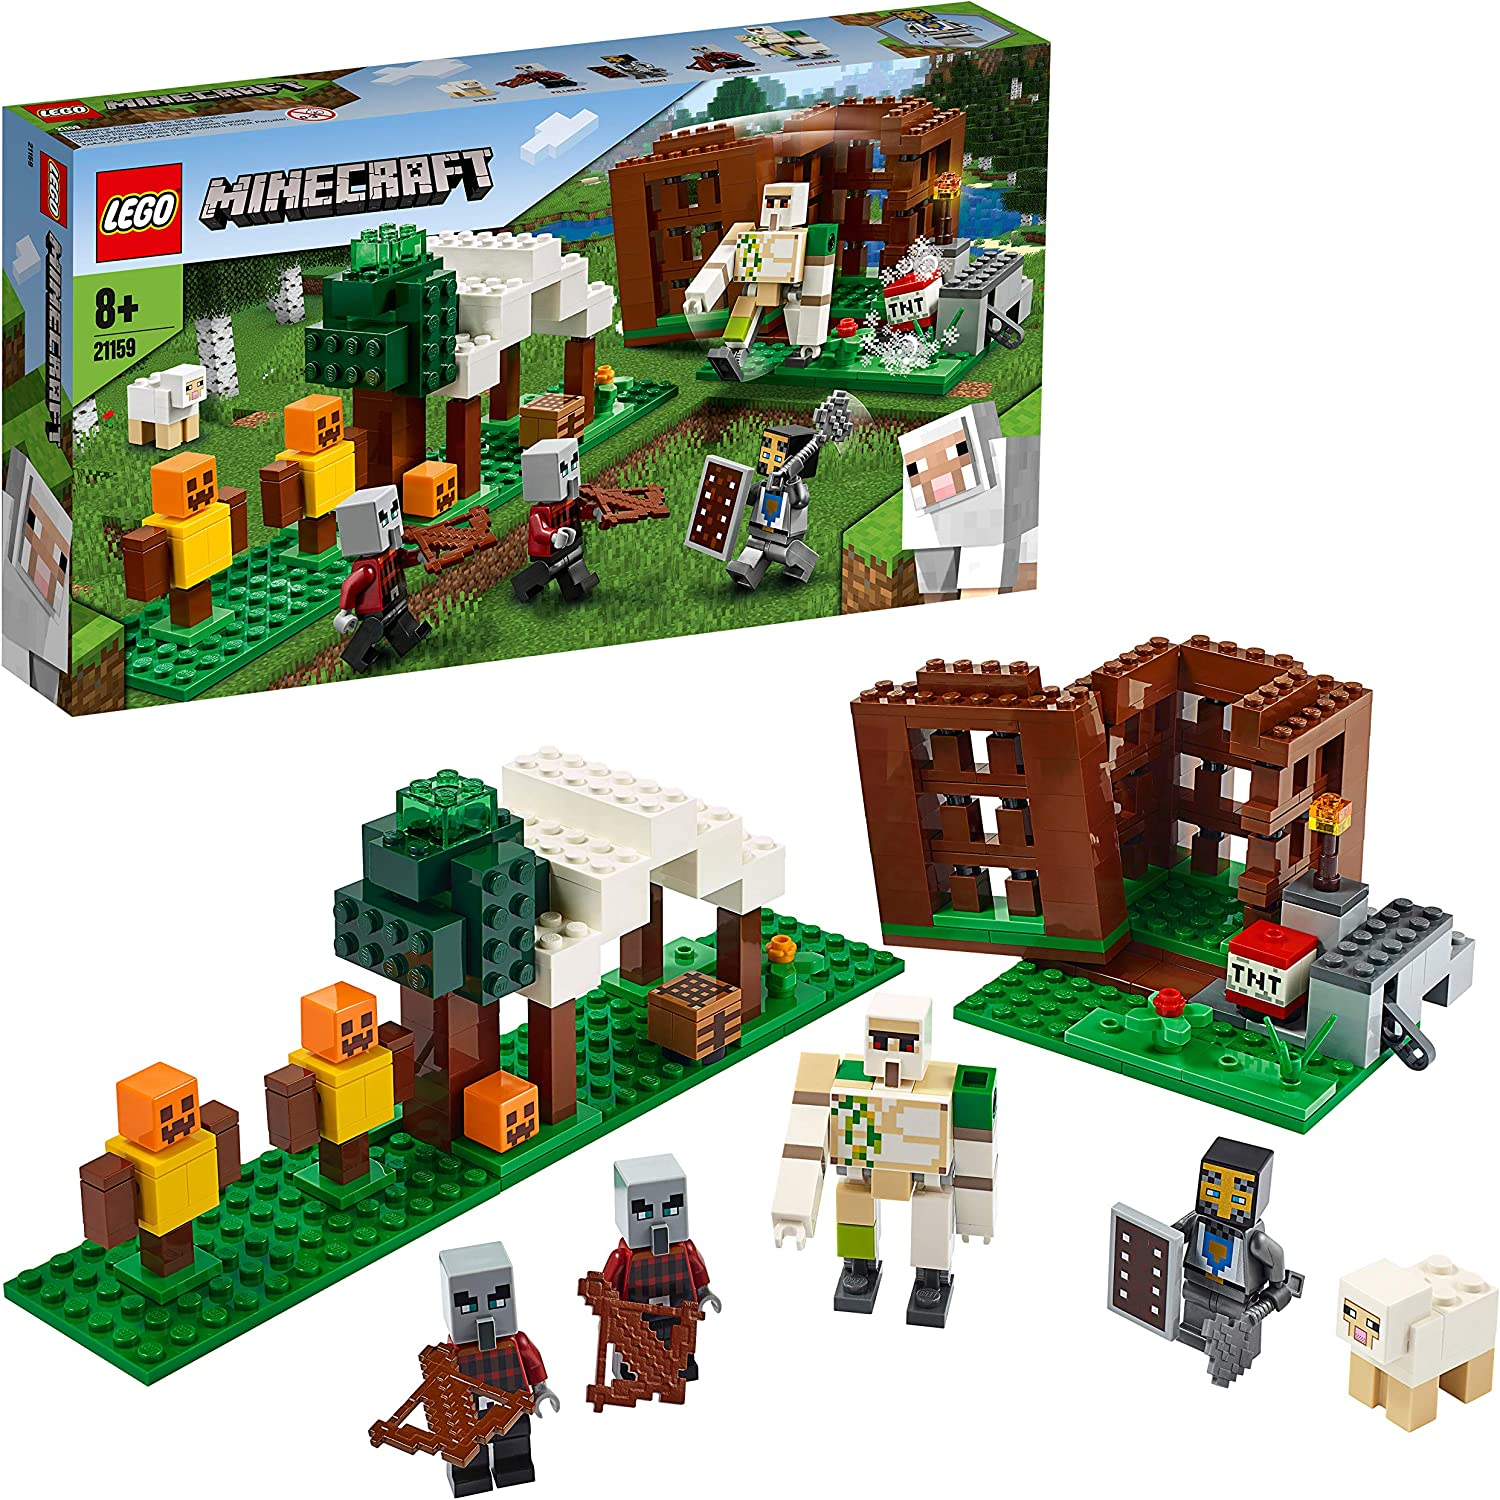 LEGO 21159 Minecraft The Pillager Outpost Action Figures Building Set 33% OFF £19.99 @ Amazon